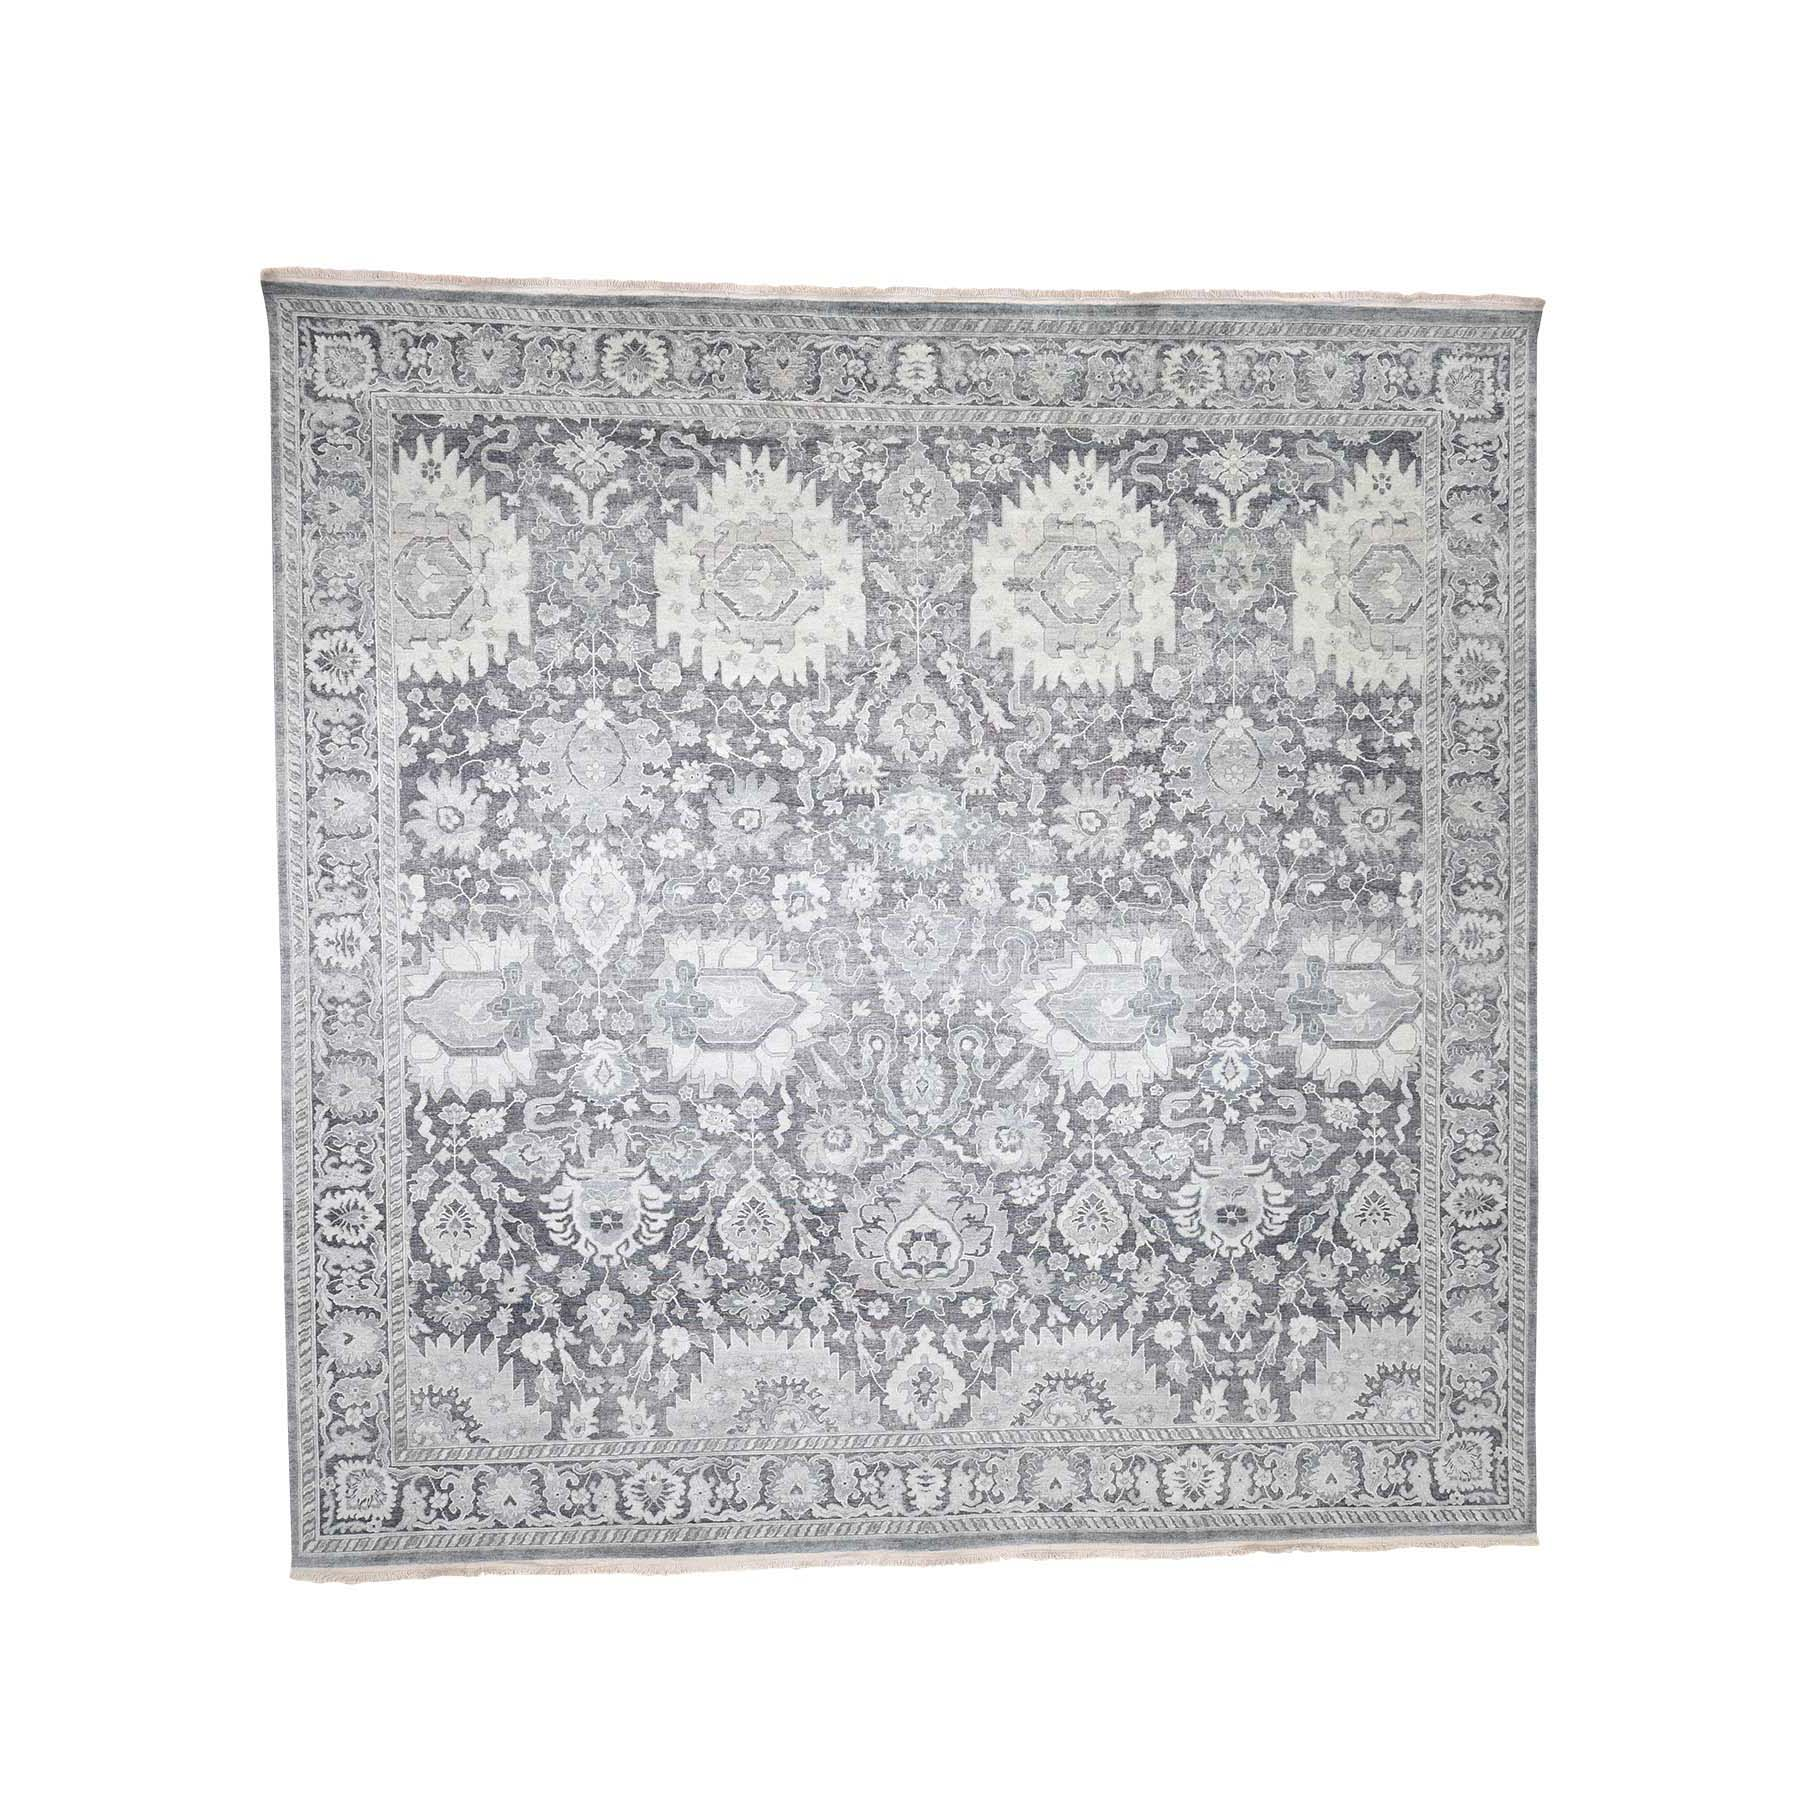 12'X12' Oushak Influence Silk With Oxidized Wool Hand-Knotted Square Oriental Rug moad0779